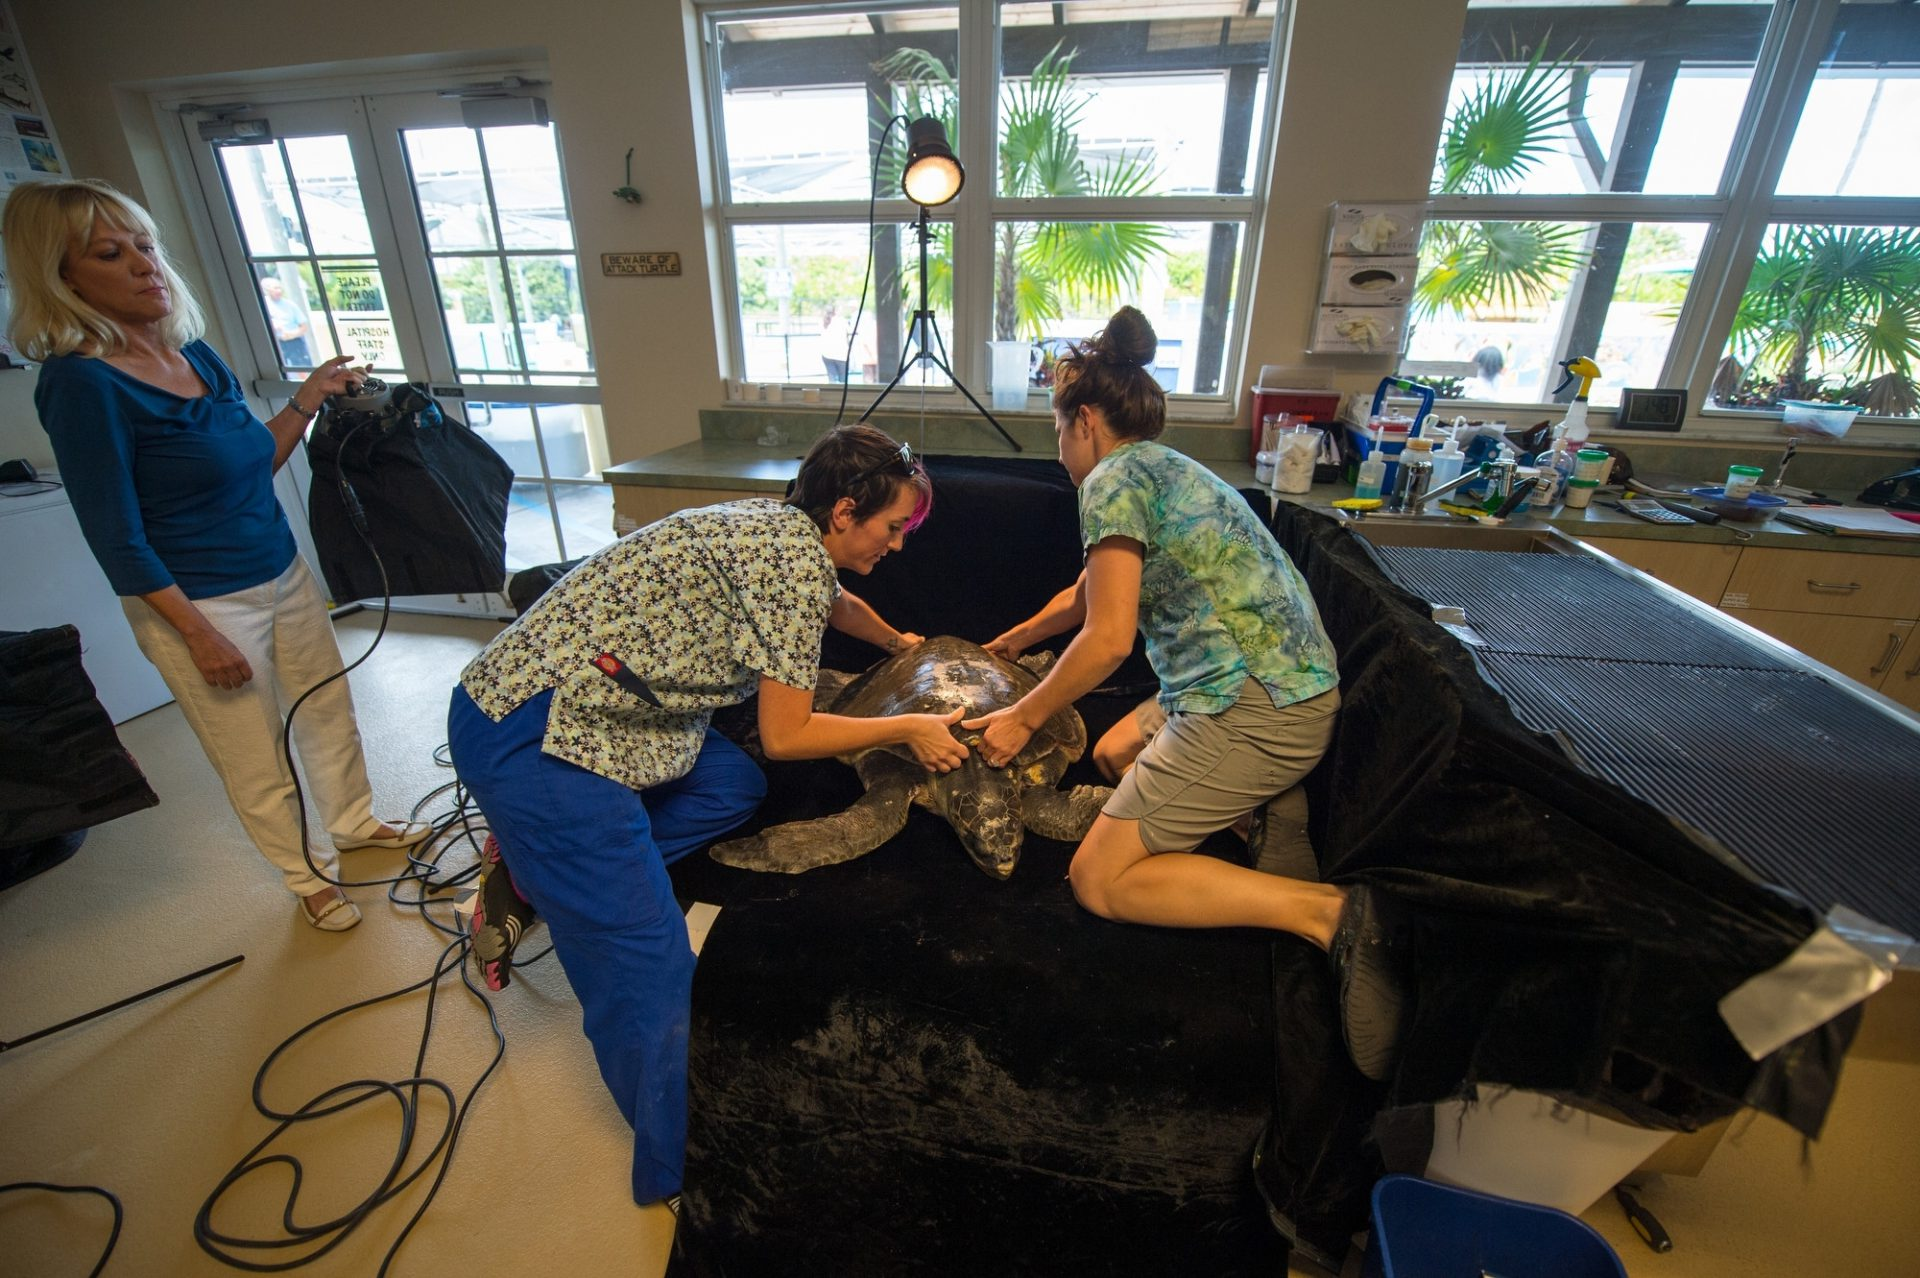 Photo: Staff members at the Loggerhead Marinelife Center prepare for a photoshoot of 'Megan' an olive ridley sea turtle (Lepidochelys olivacea). This animal came in after becoming entangled in fishing gear.